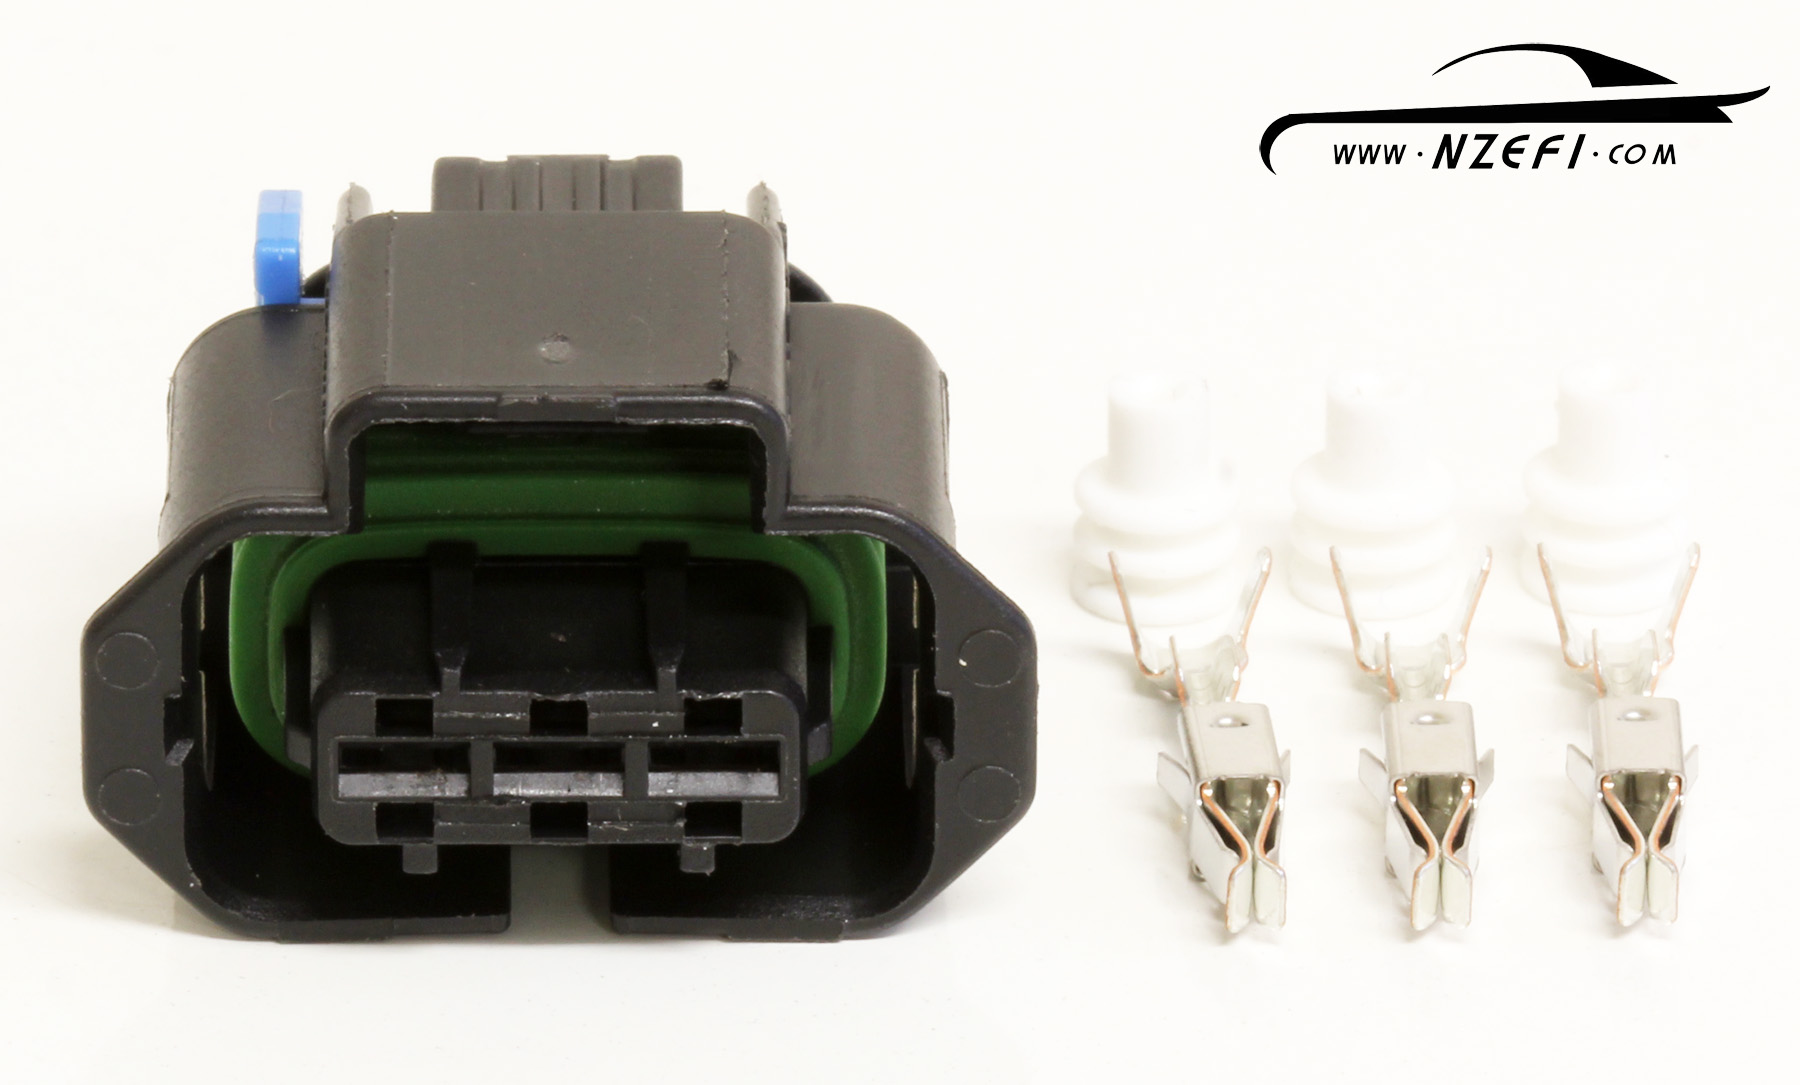 Gm Gen Iv Ls3 Ls7 Map Sensor Connector Nzefi Performance Tuning Wiring Connectors